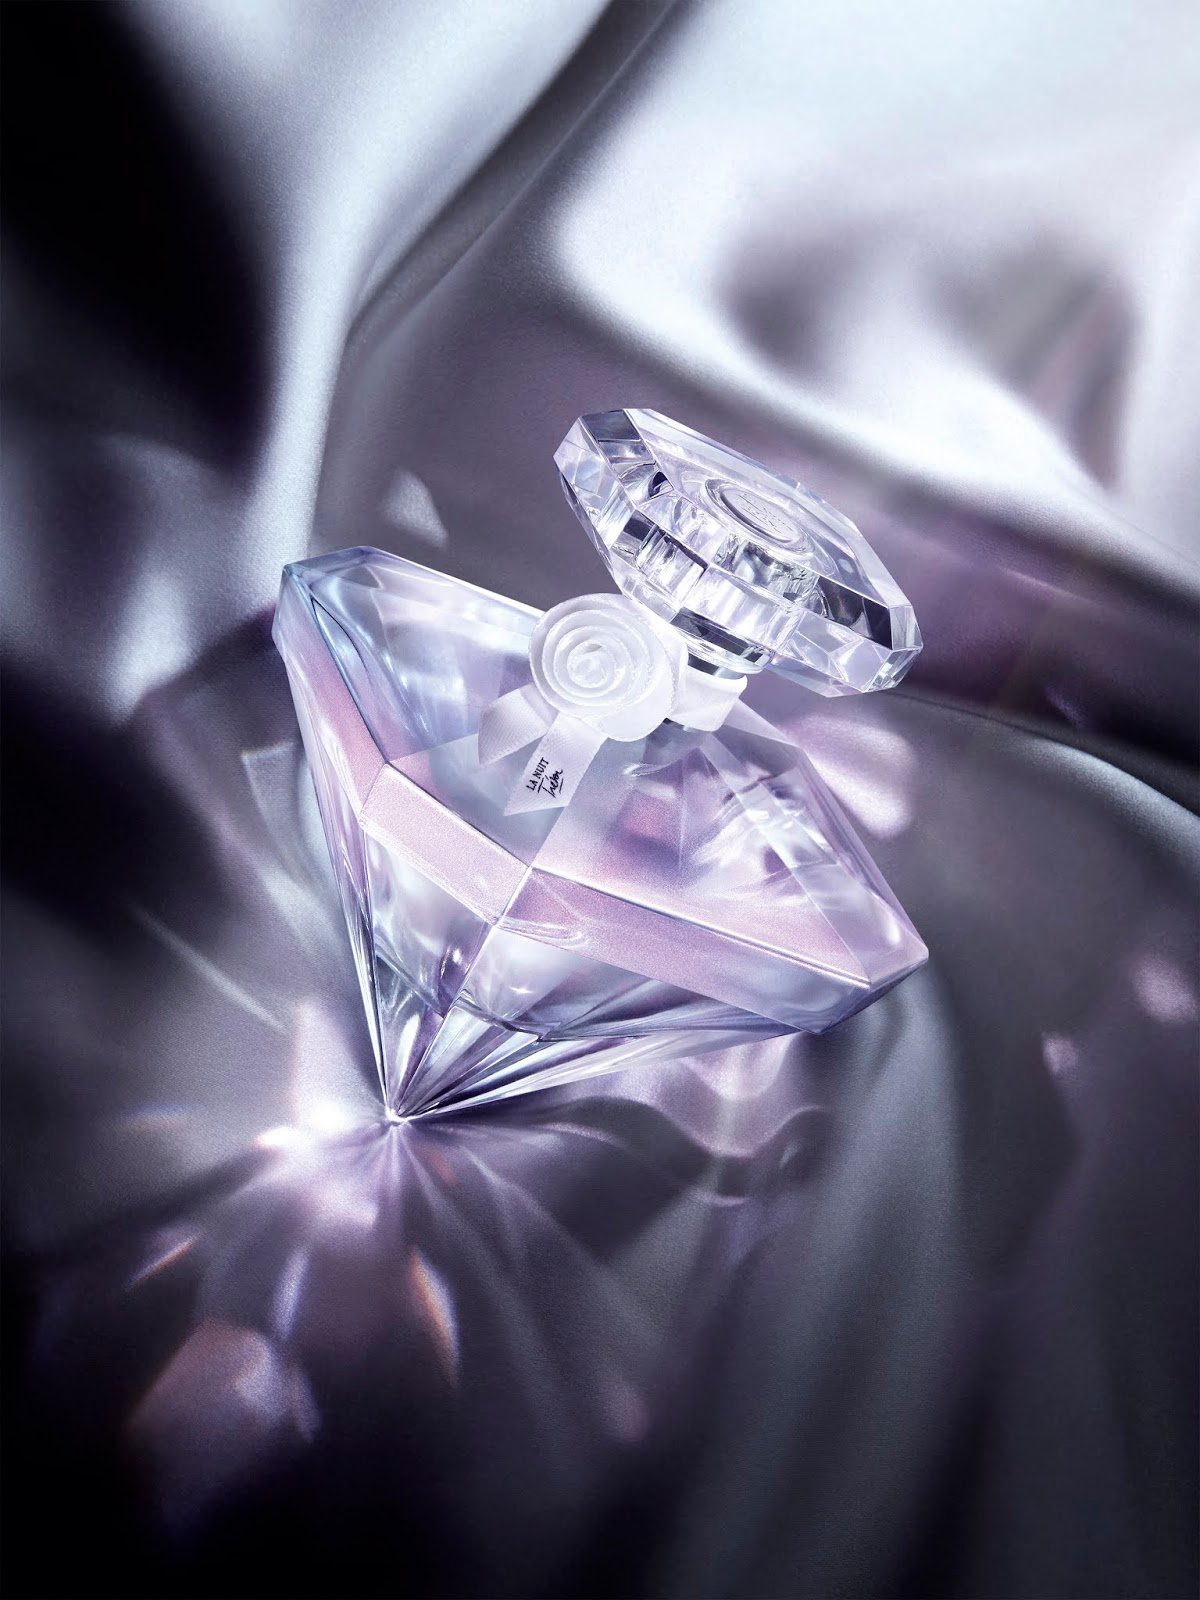 Parfum Diamantform La Nuit Trésor Musc Diamant Lancome For Women